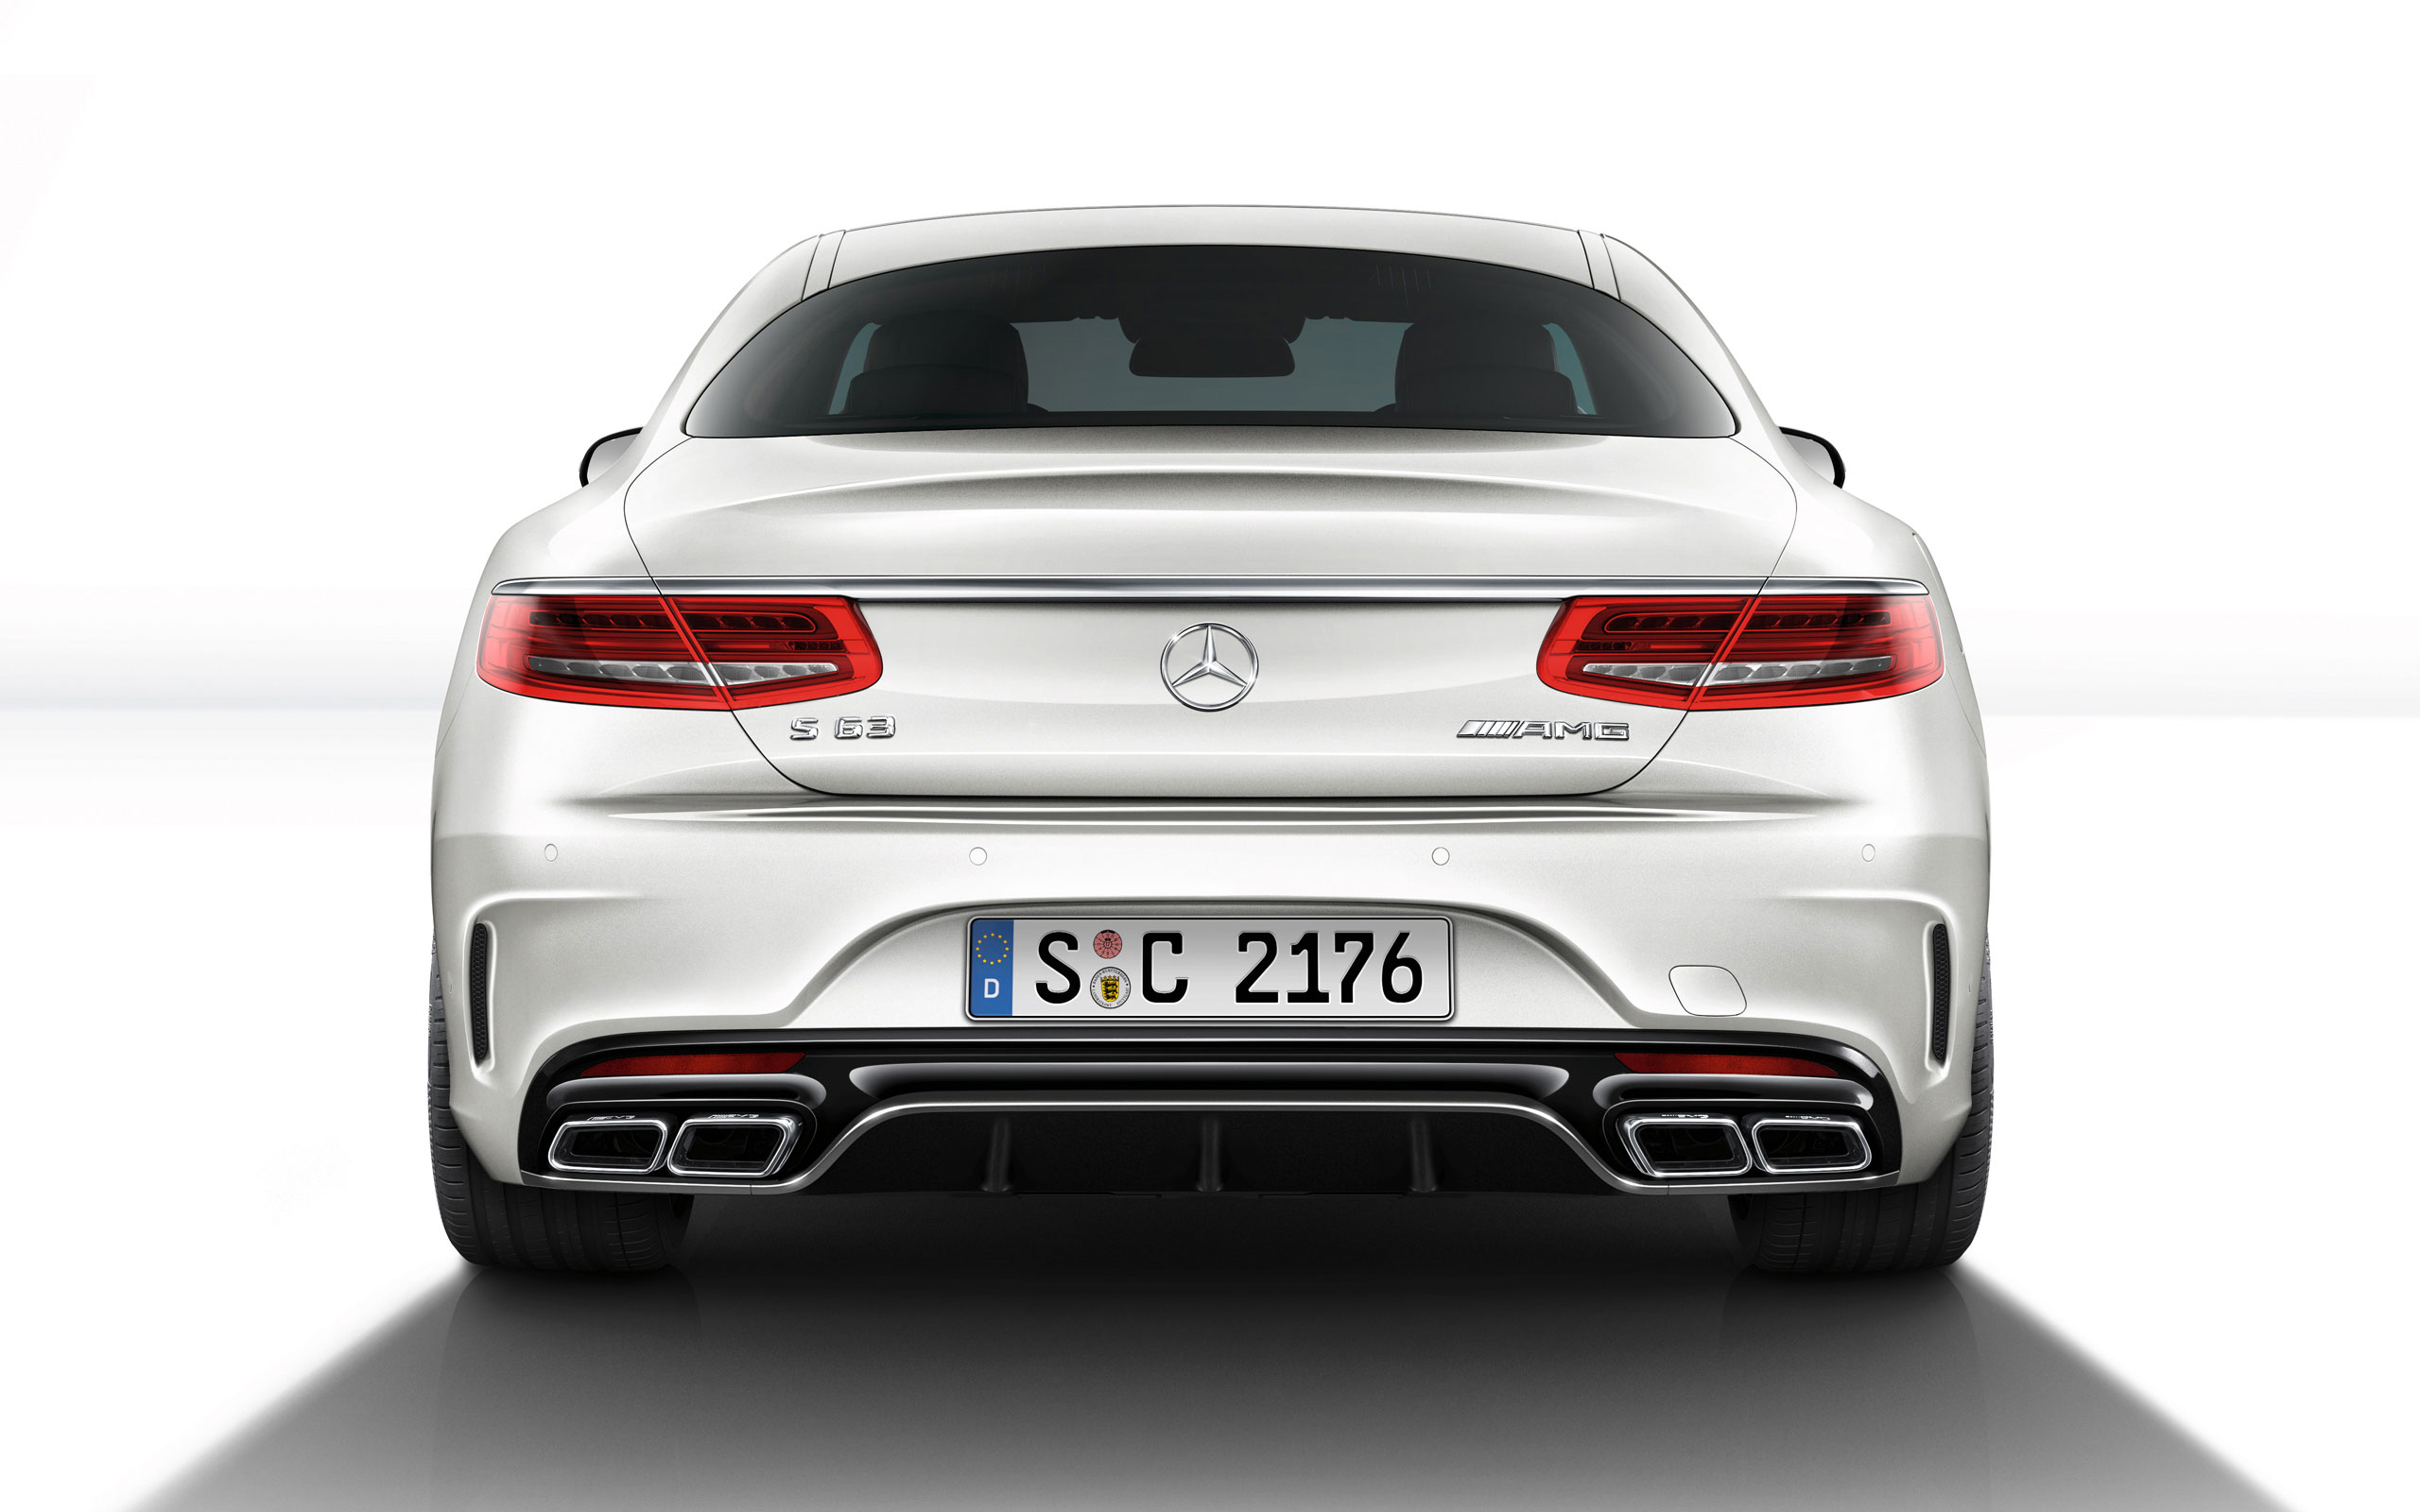 2014 mercedes benz s63 amg 4matic coupe mercedes benz. Black Bedroom Furniture Sets. Home Design Ideas